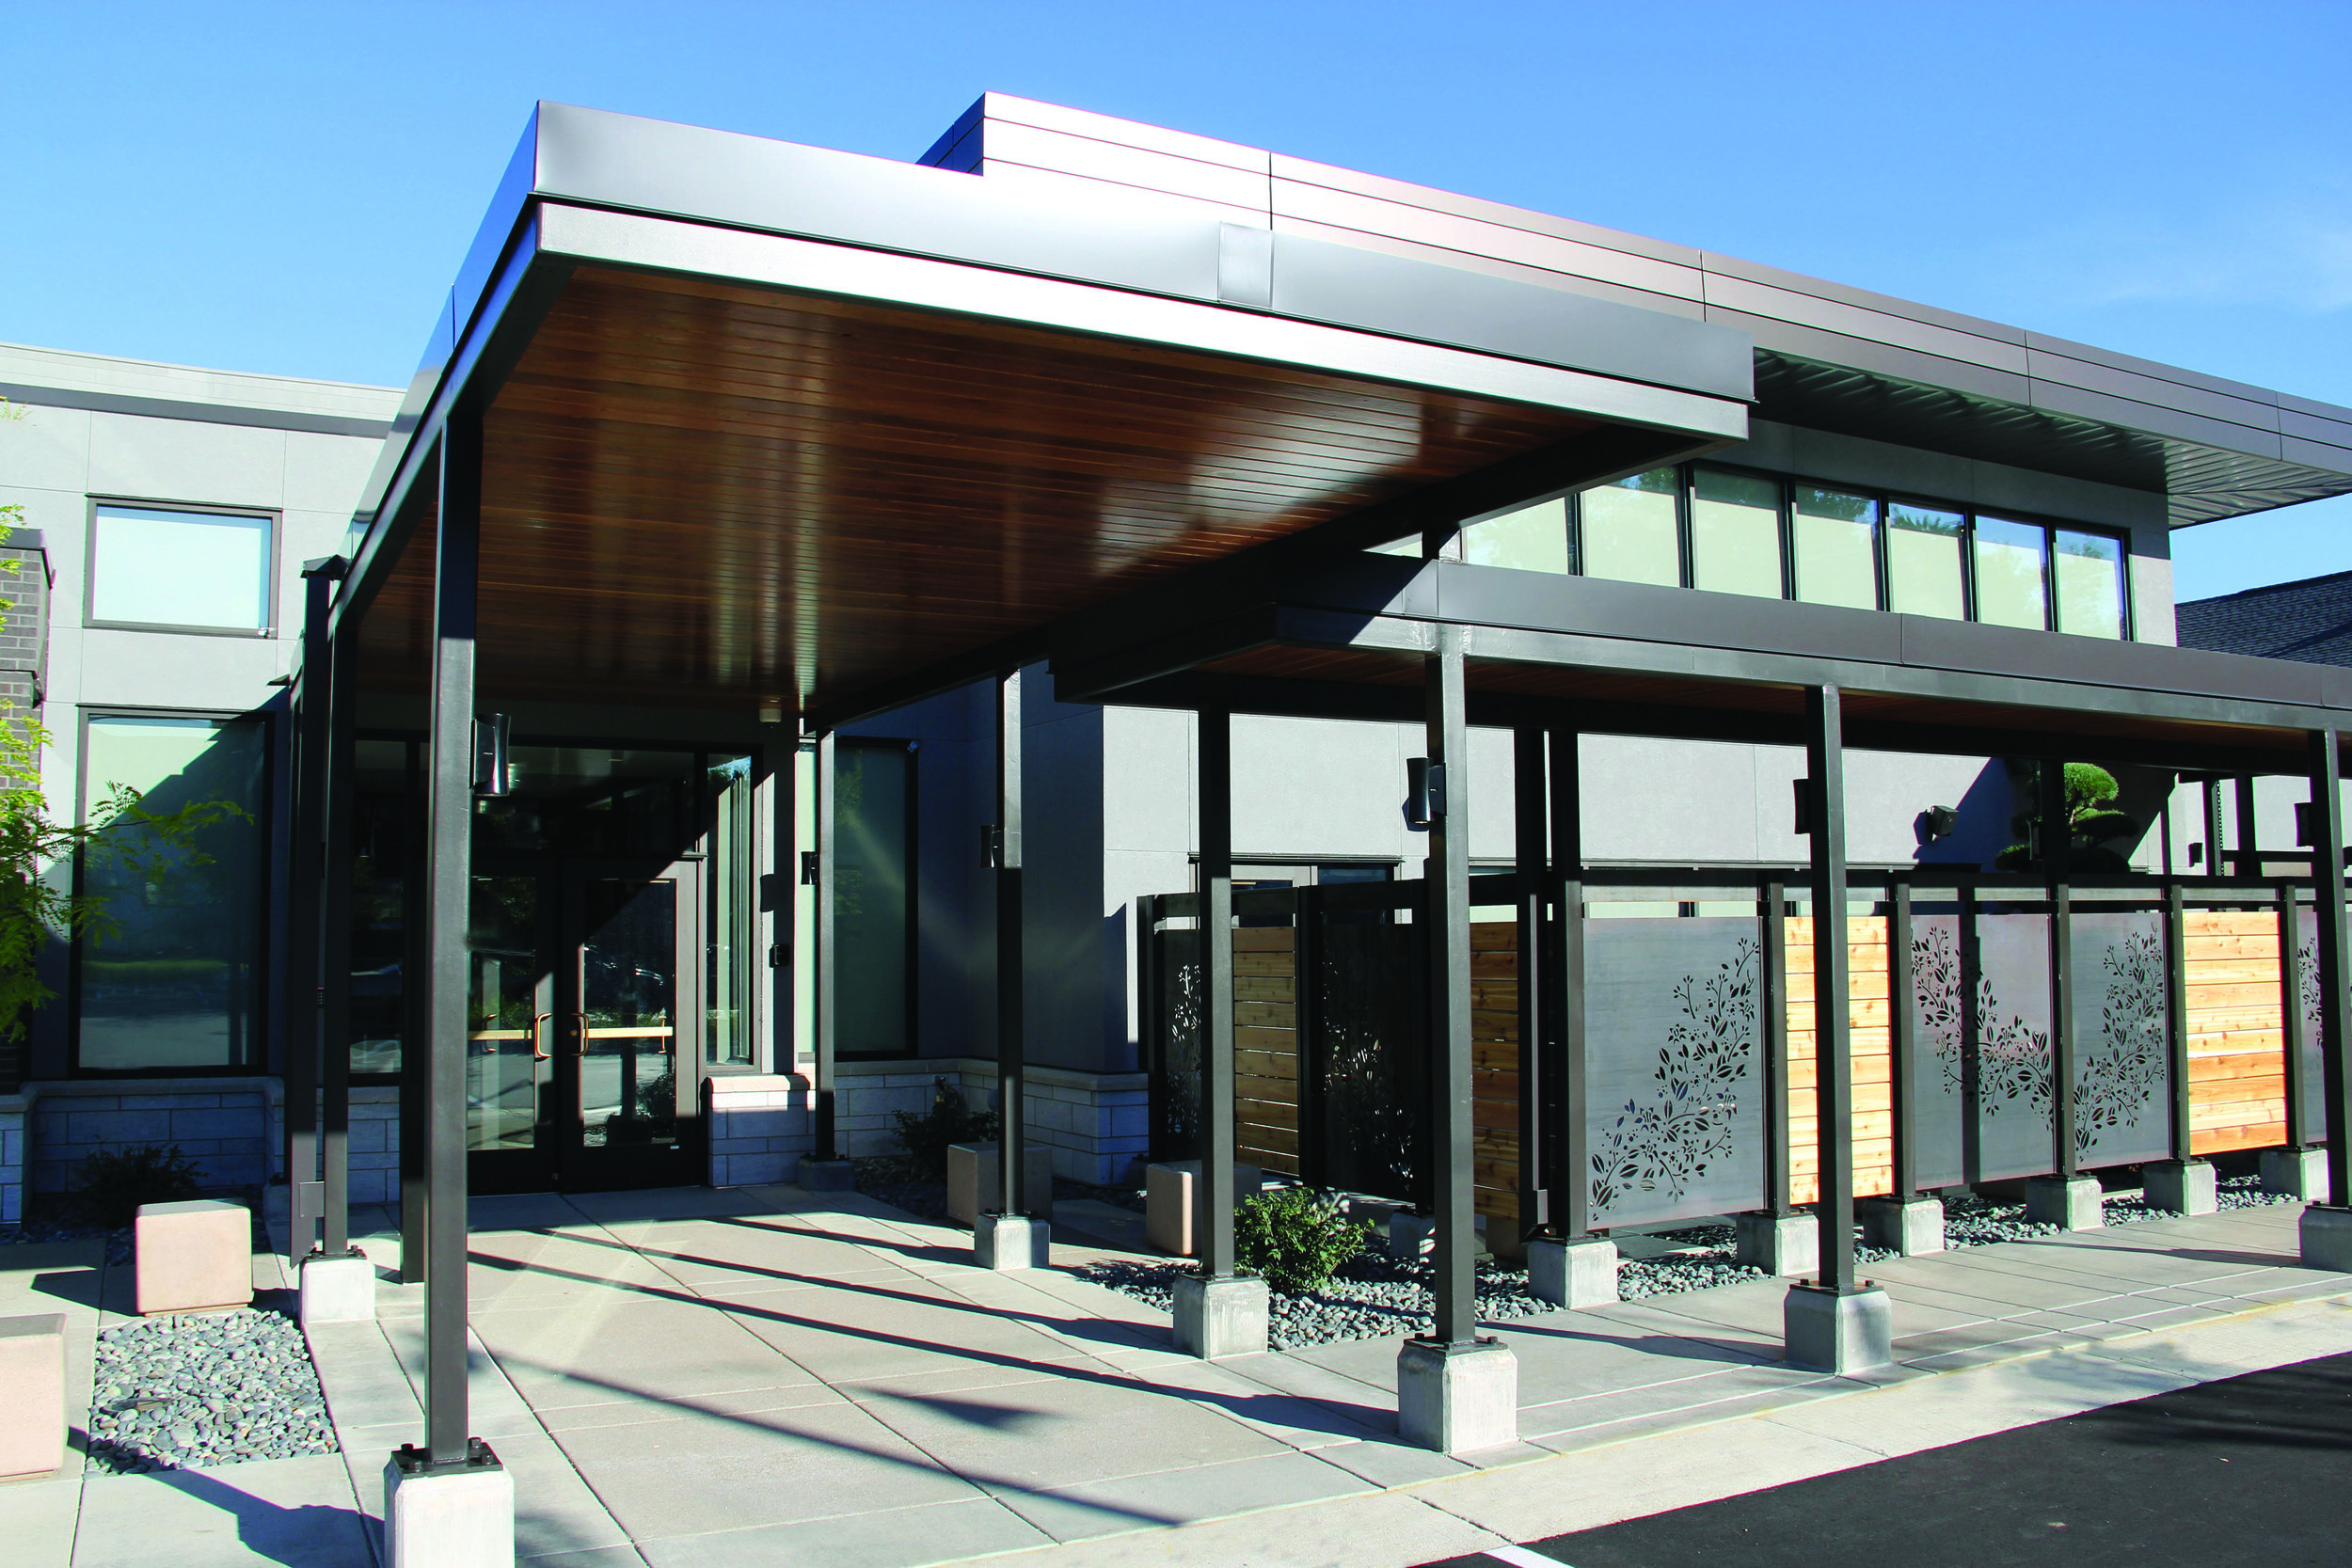 Estes Funeral Chapel, Inc - Visit the newly and beautifully redeveloped Estes Funeral Chapel and immediately experience awelcoming and comfortable environment. Founded in 1962, Estes was the only Black-owned funeral home in Minneapolis. Tour and see state-of-the-art features, new technology including live-streaming services and the community meeting space that make this funeral chapel unique.